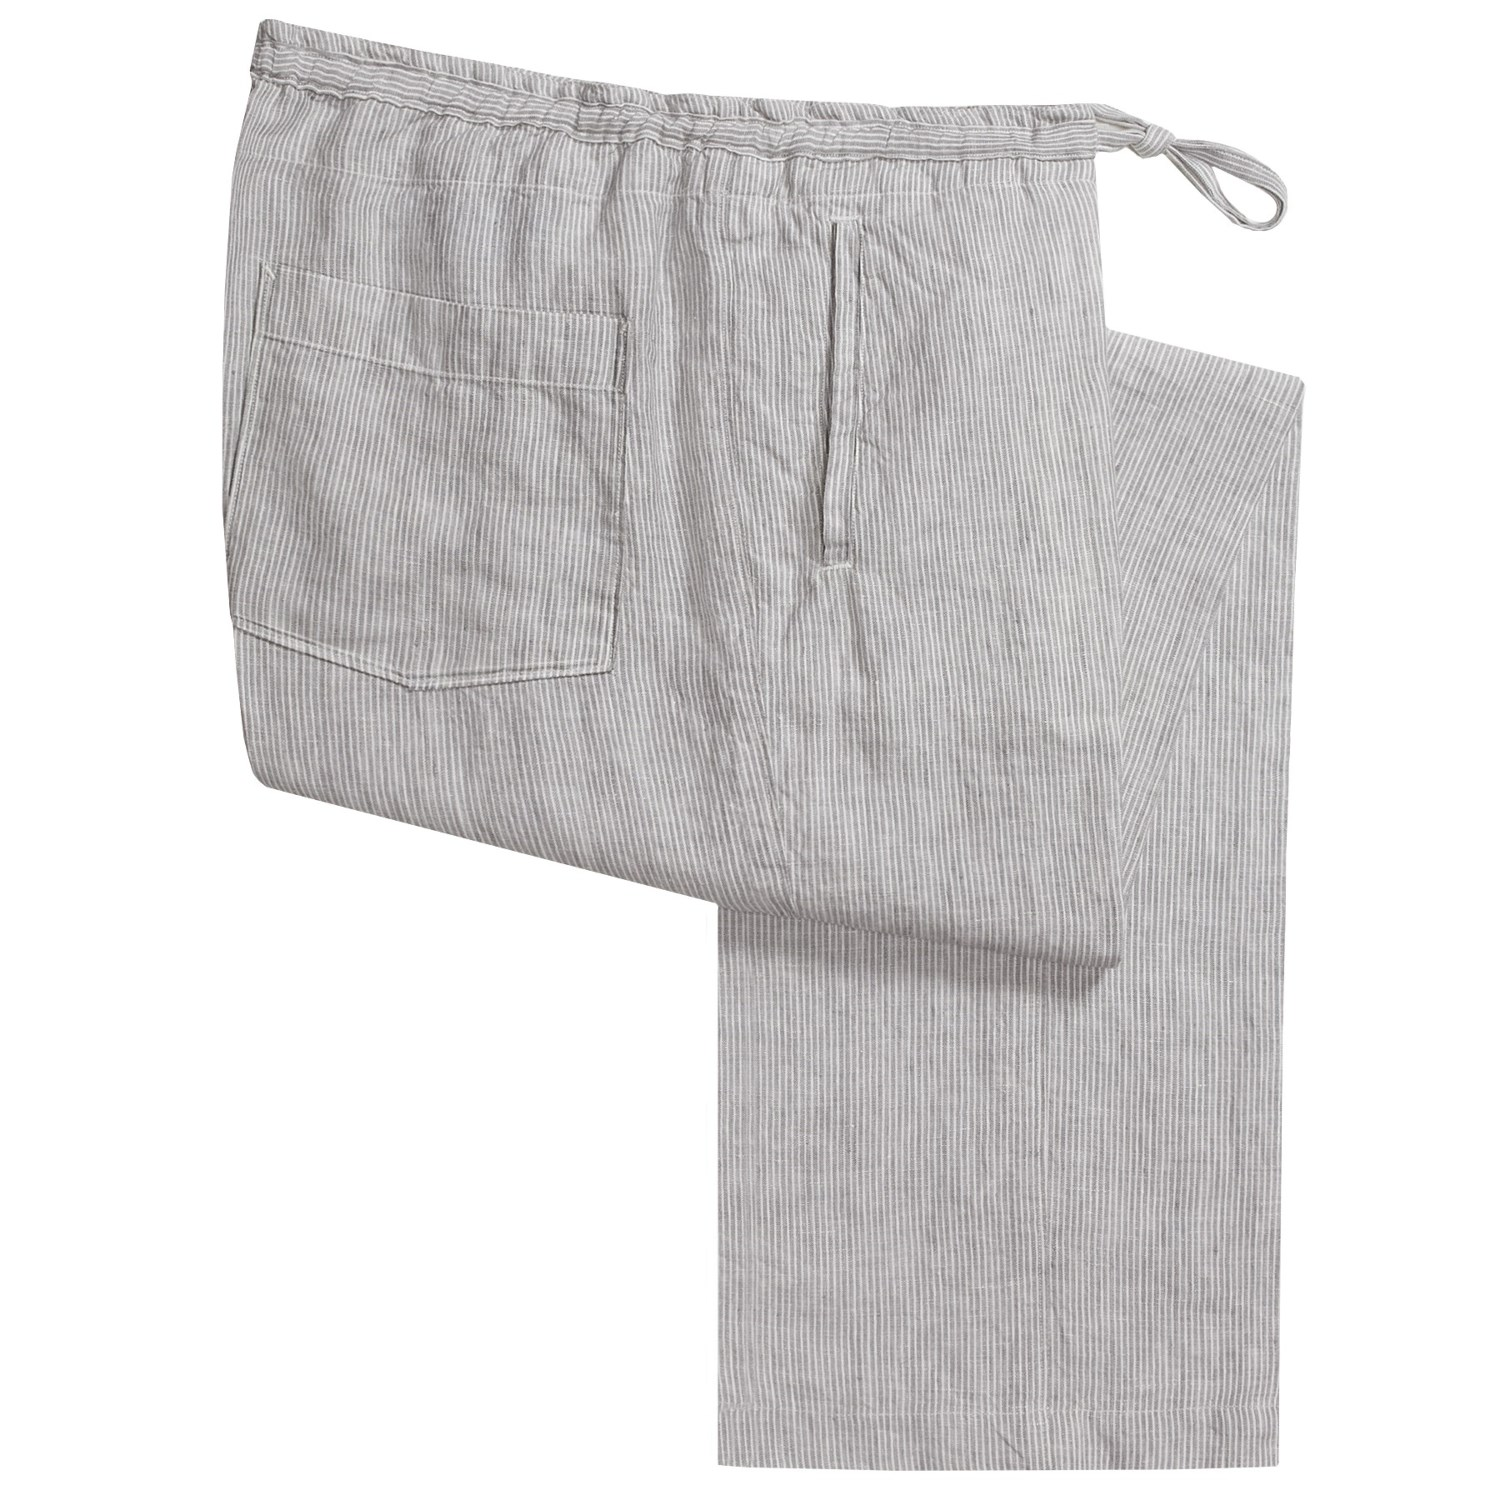 Drawstring Pants For Men Linen Drawstring Pants For Men